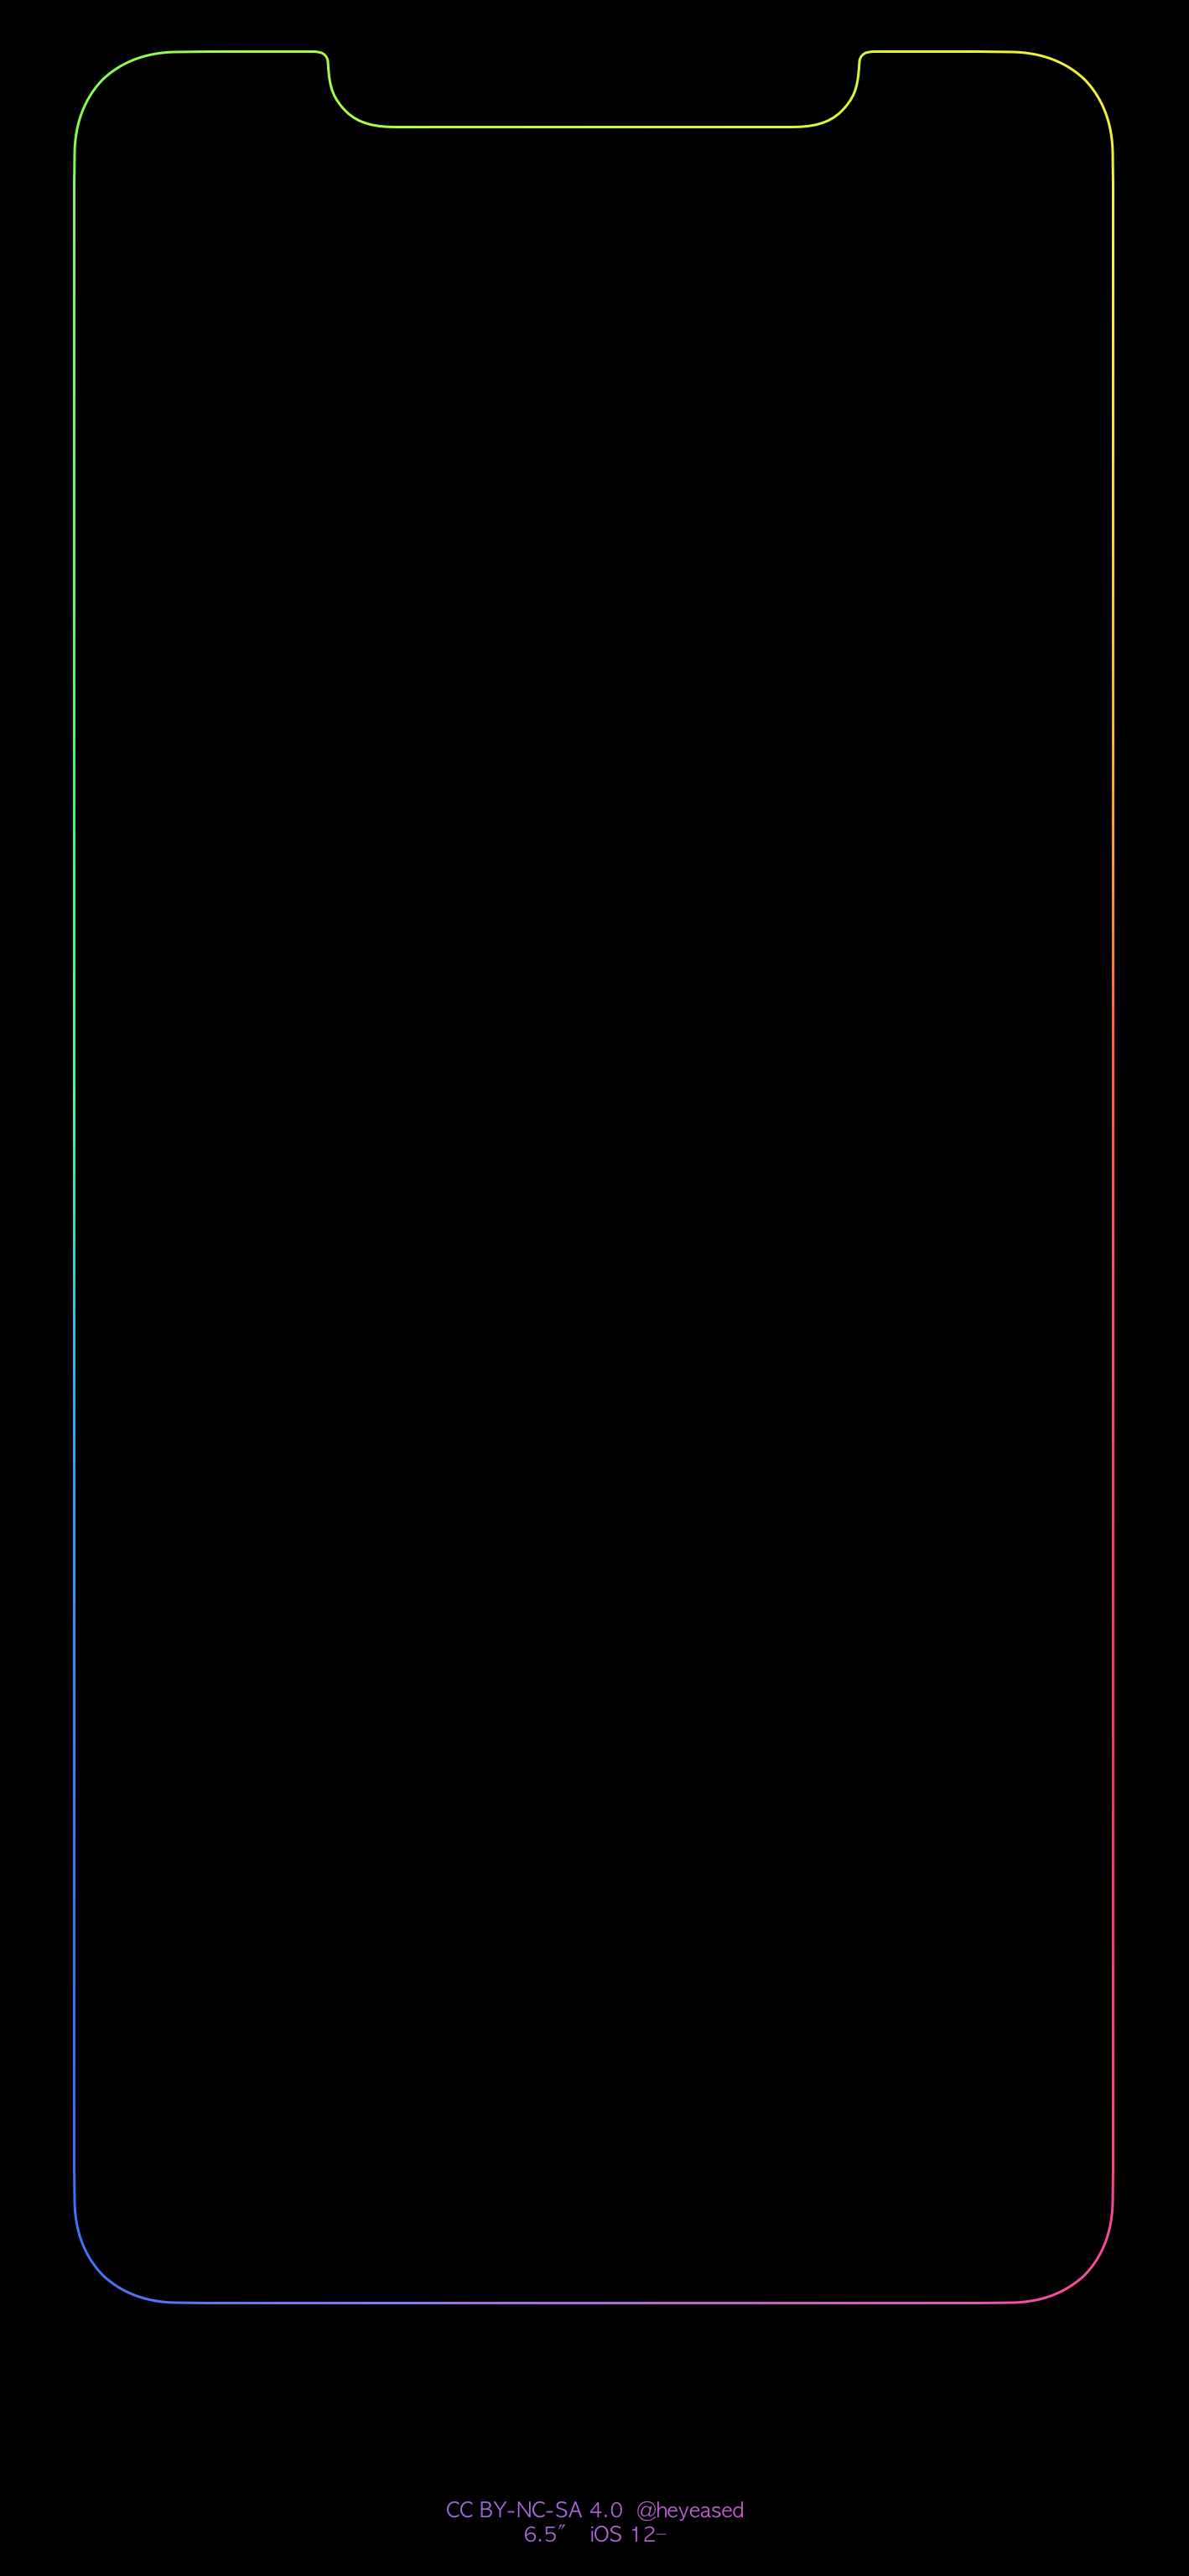 The Ultimate Iphone X Wallpaper Has Finally Been Updated For The Iphone Xs Max Bgr